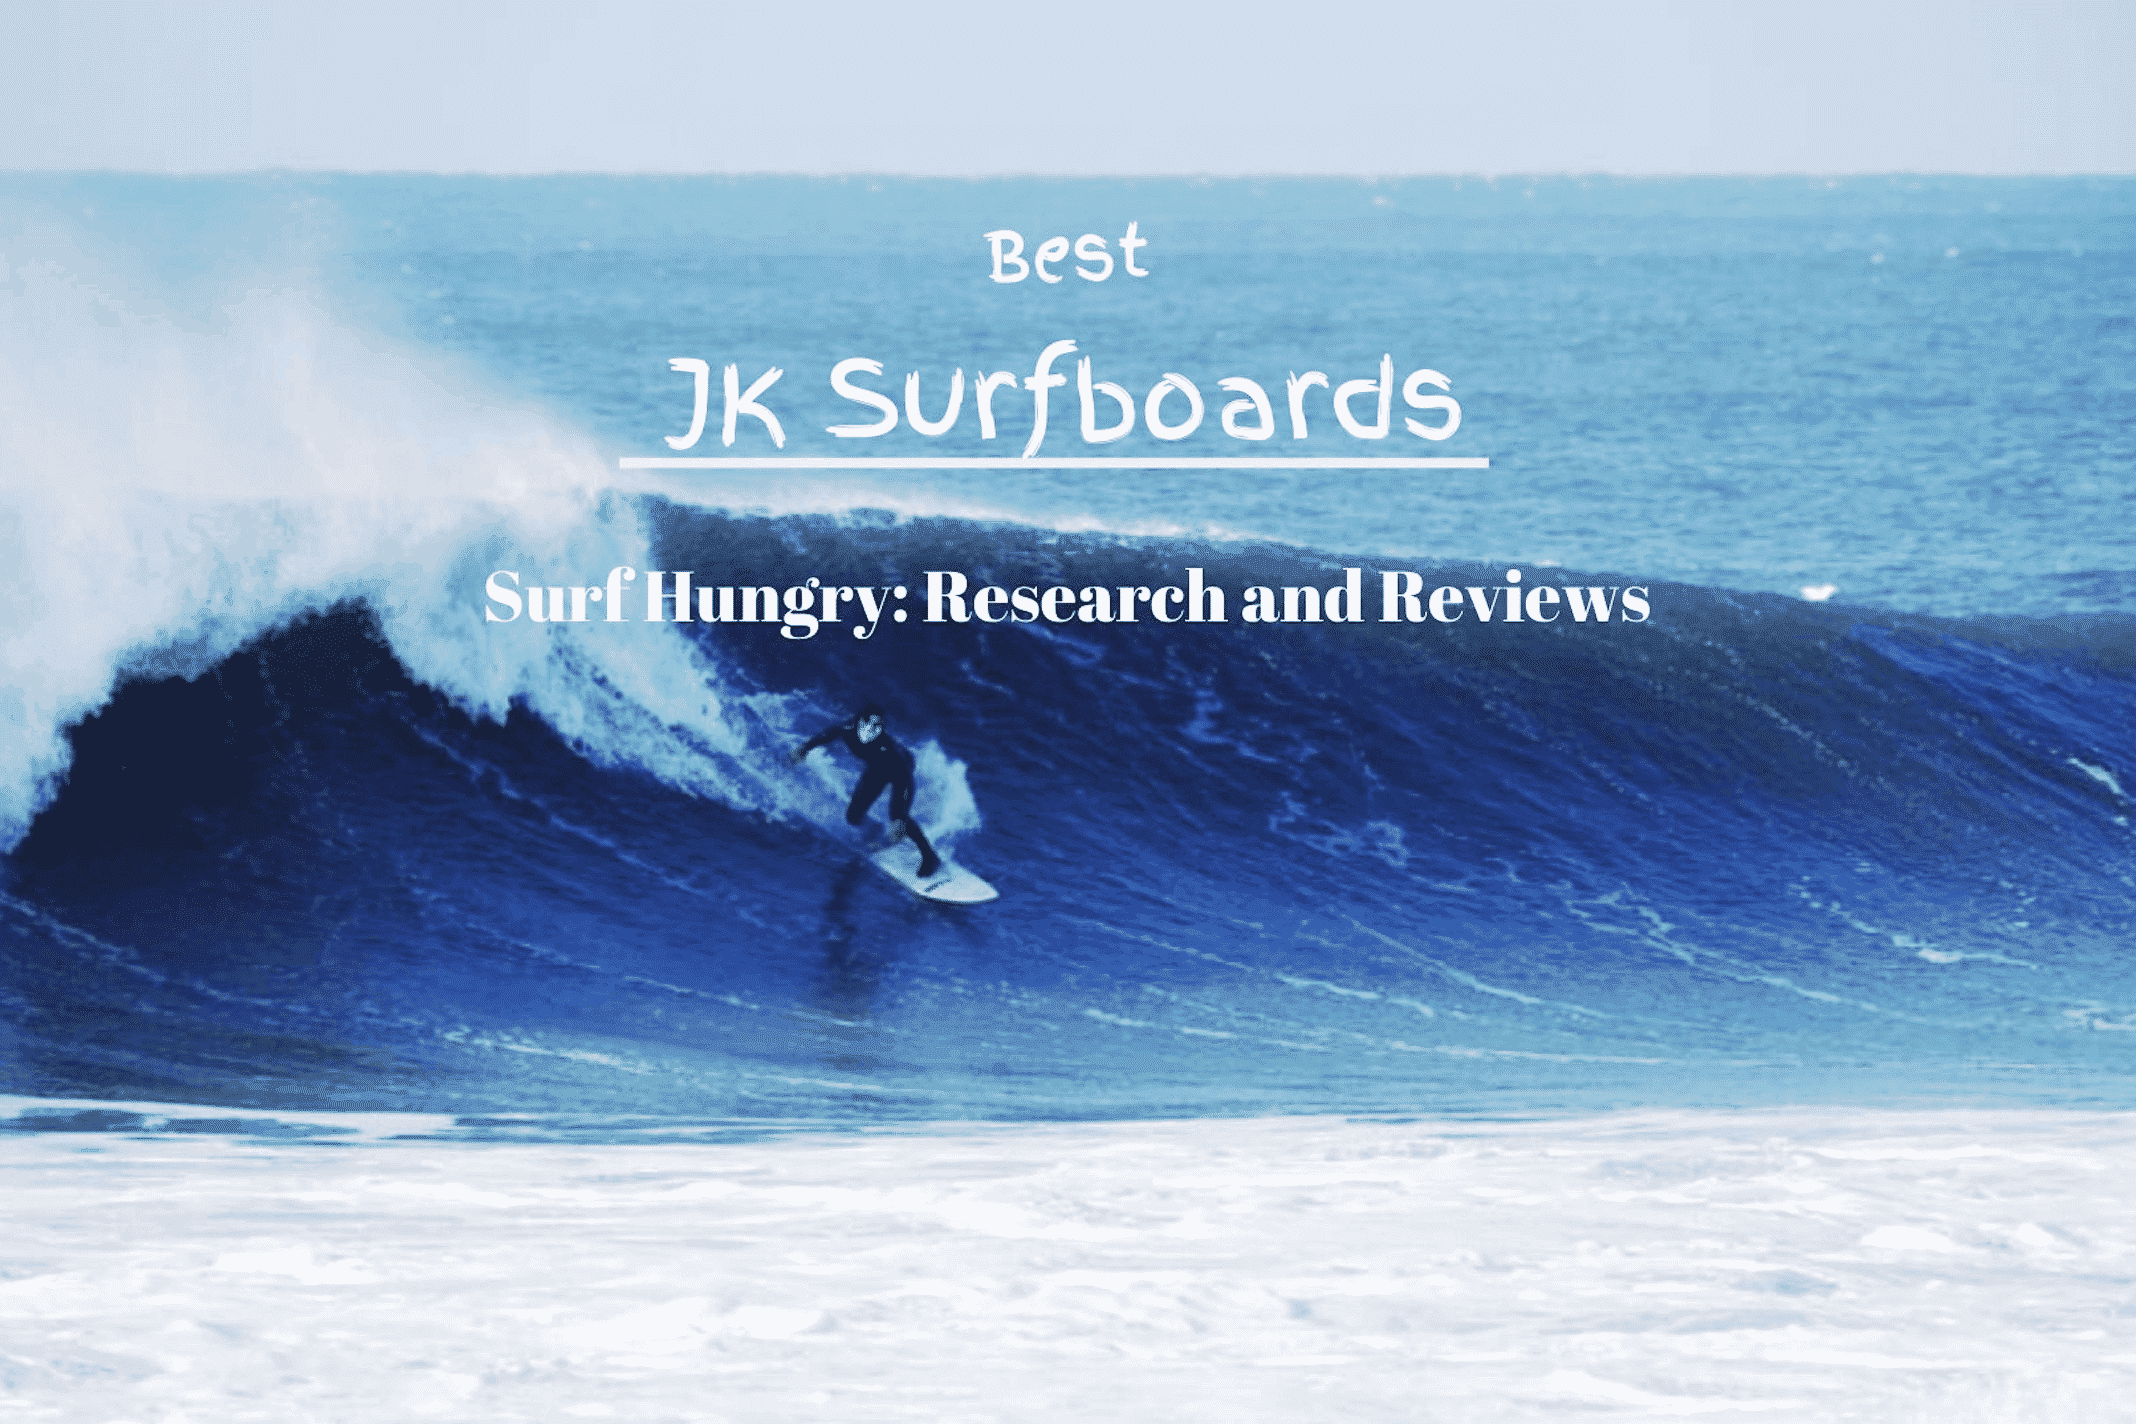 jk surfboards review